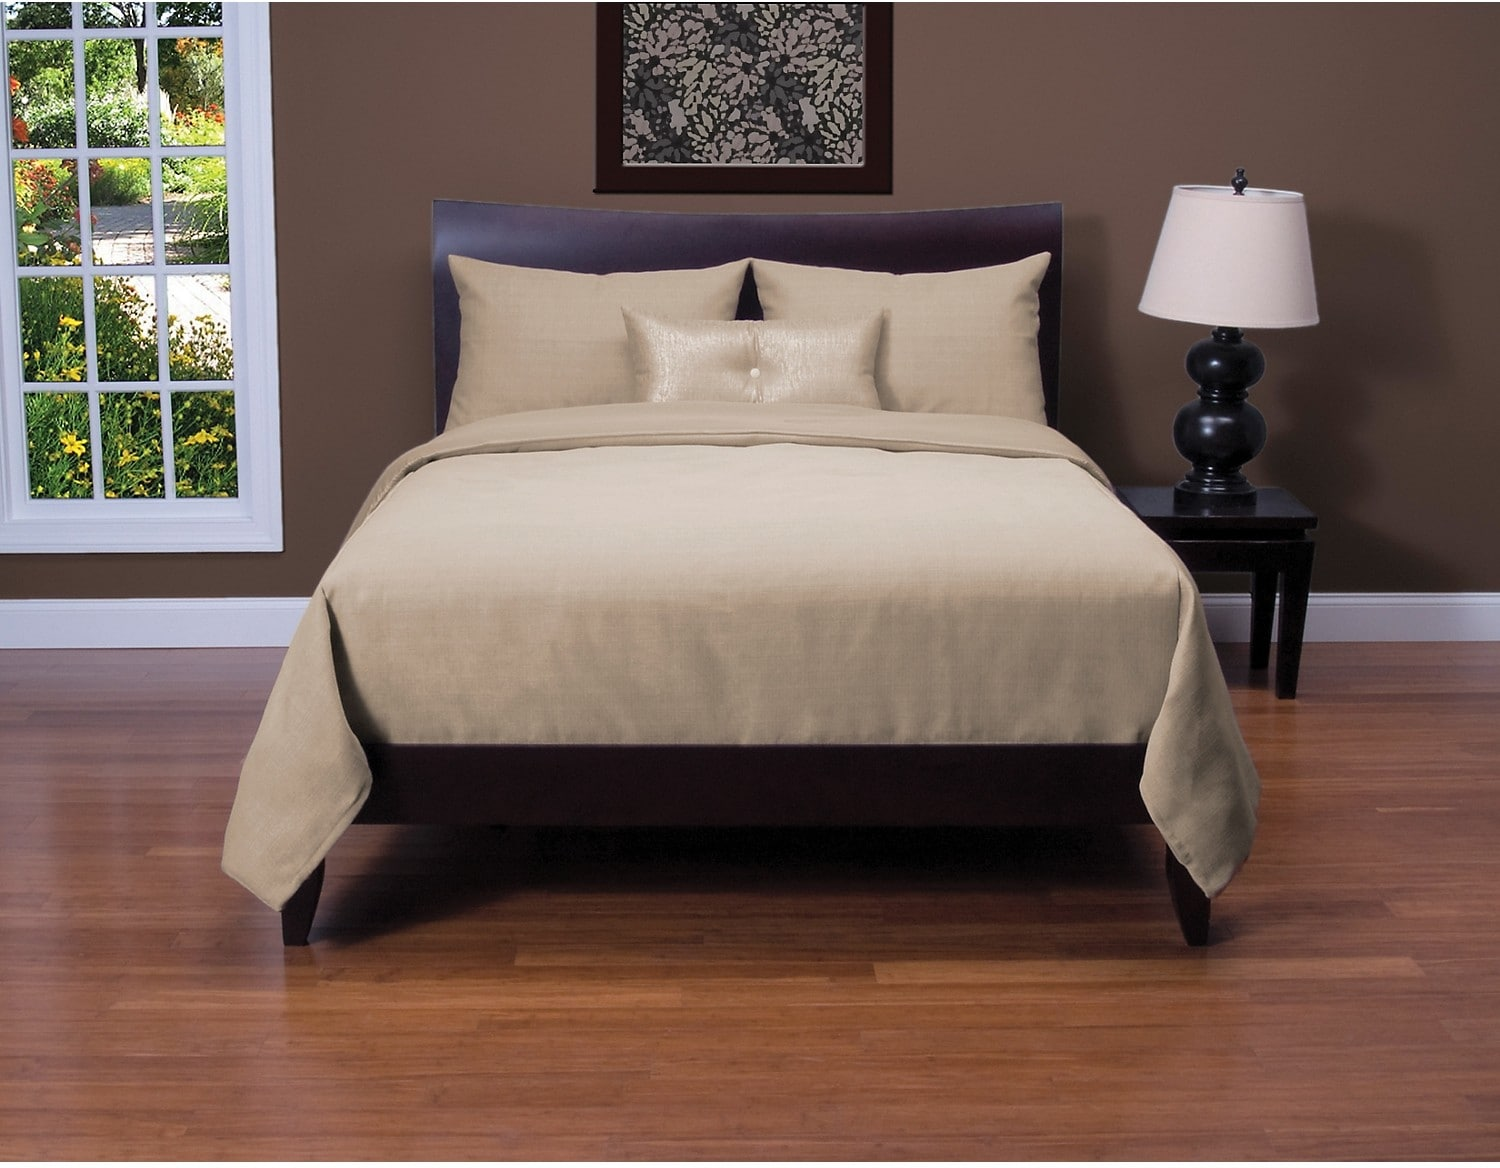 Belfast 4 Piece Queen Duvet Cover Set - Flax